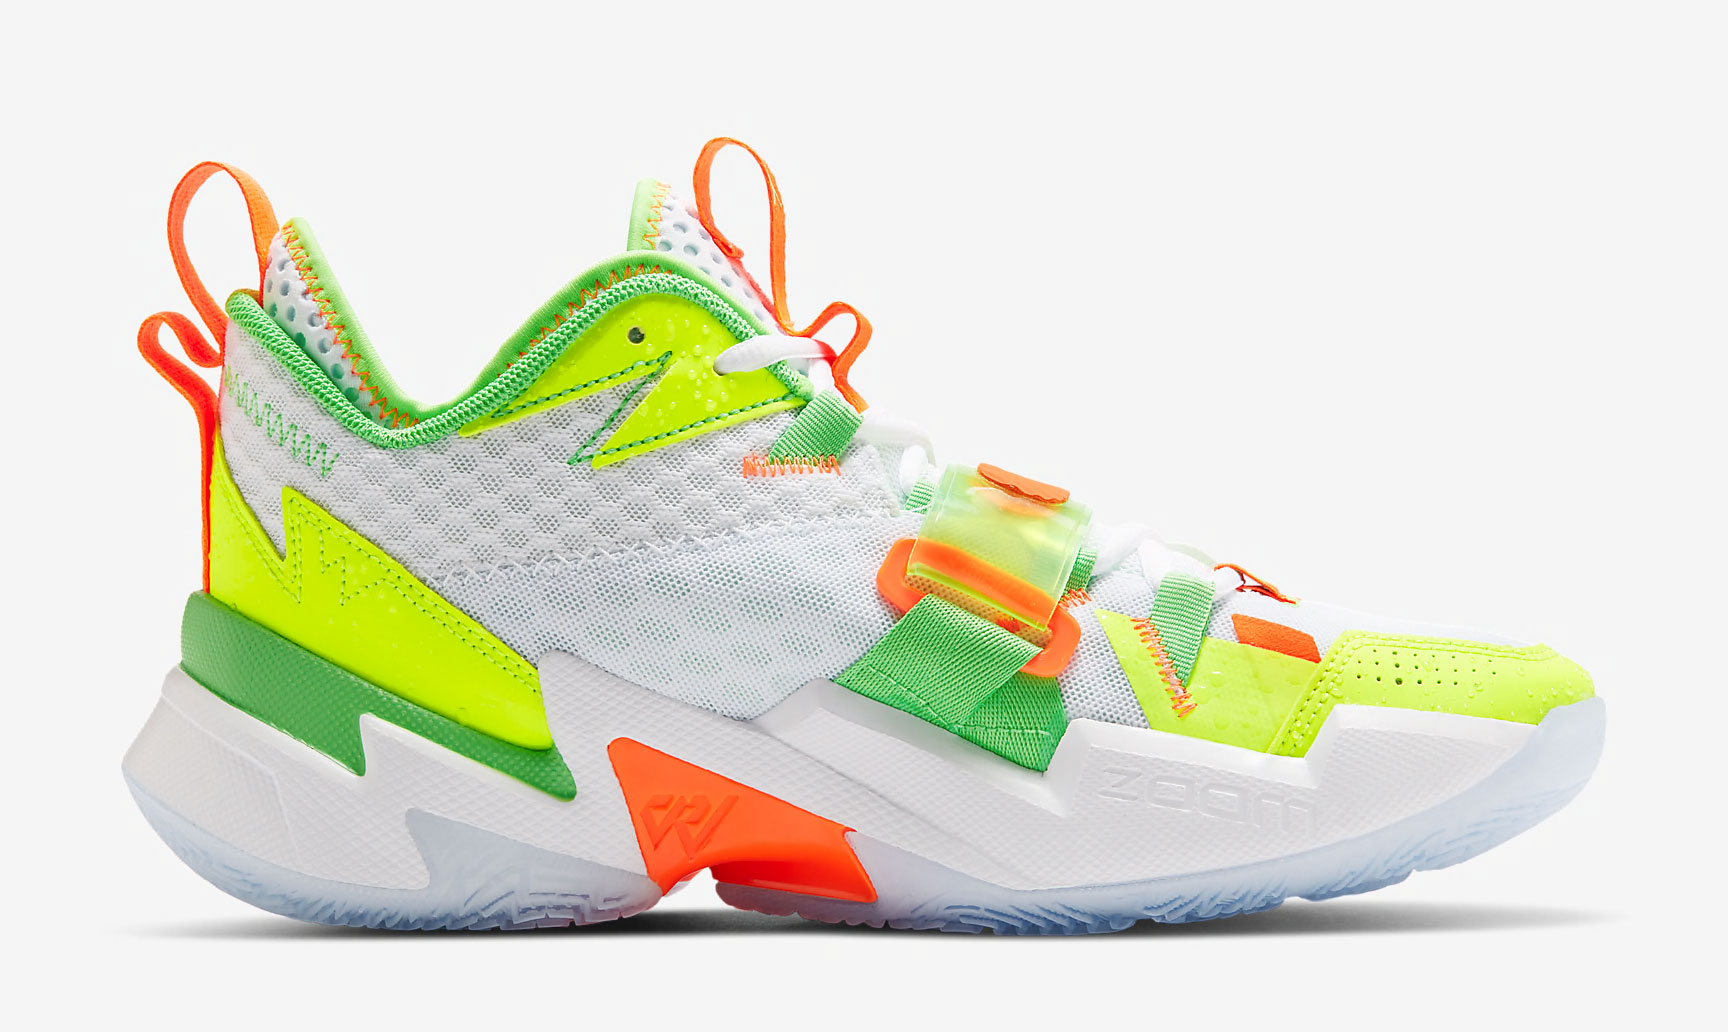 jordan-why-not-zer03-splash-zone-3